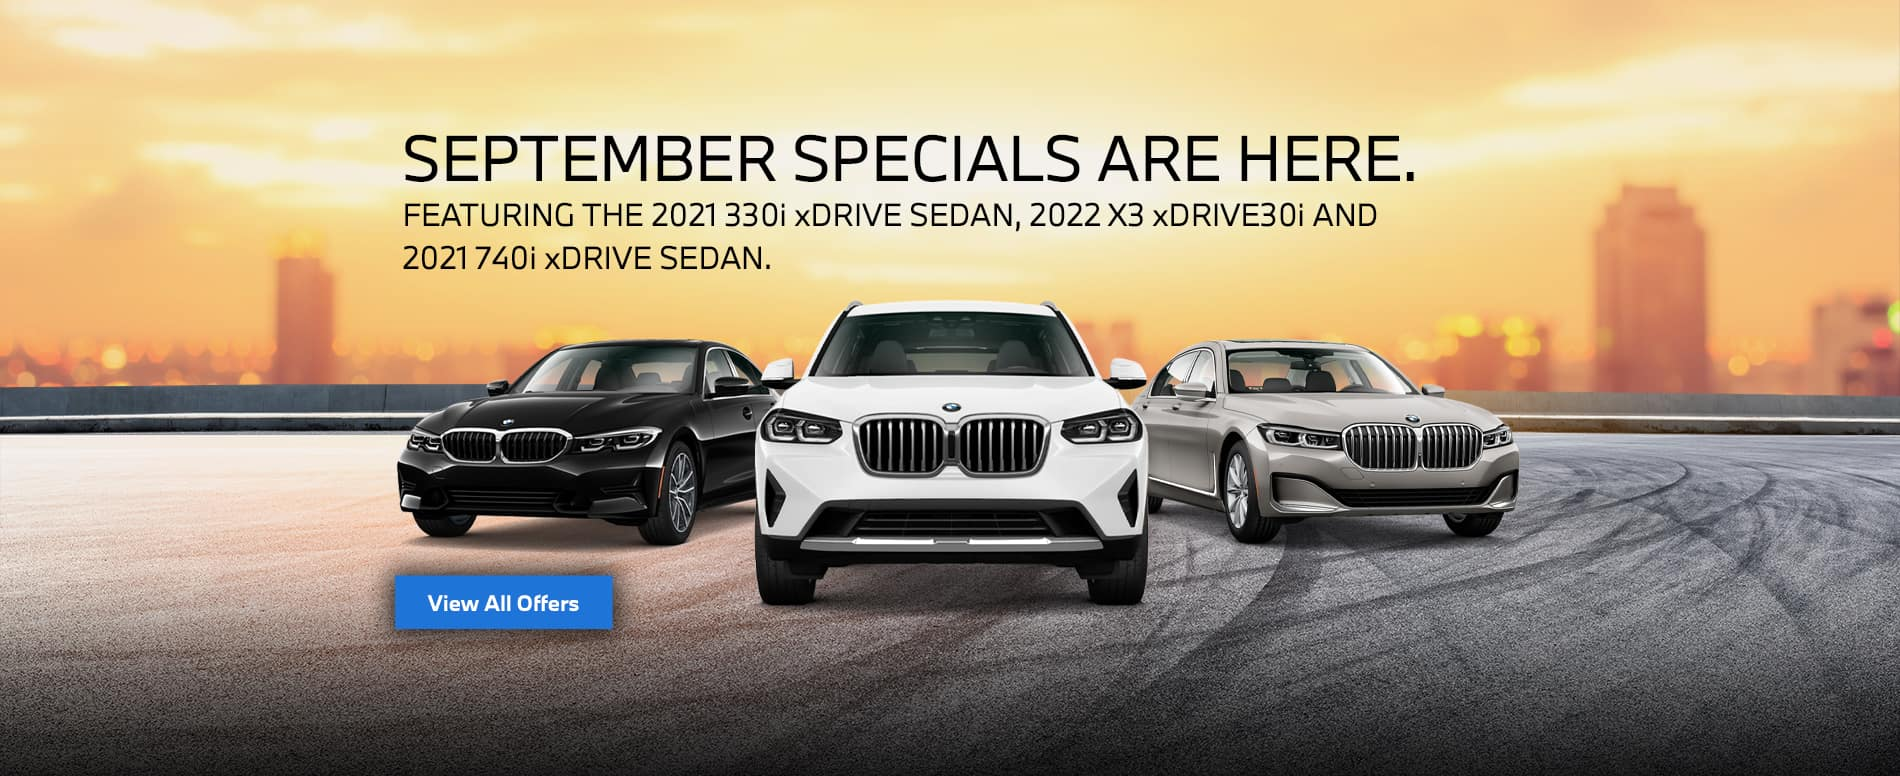 BMW September specials are here!